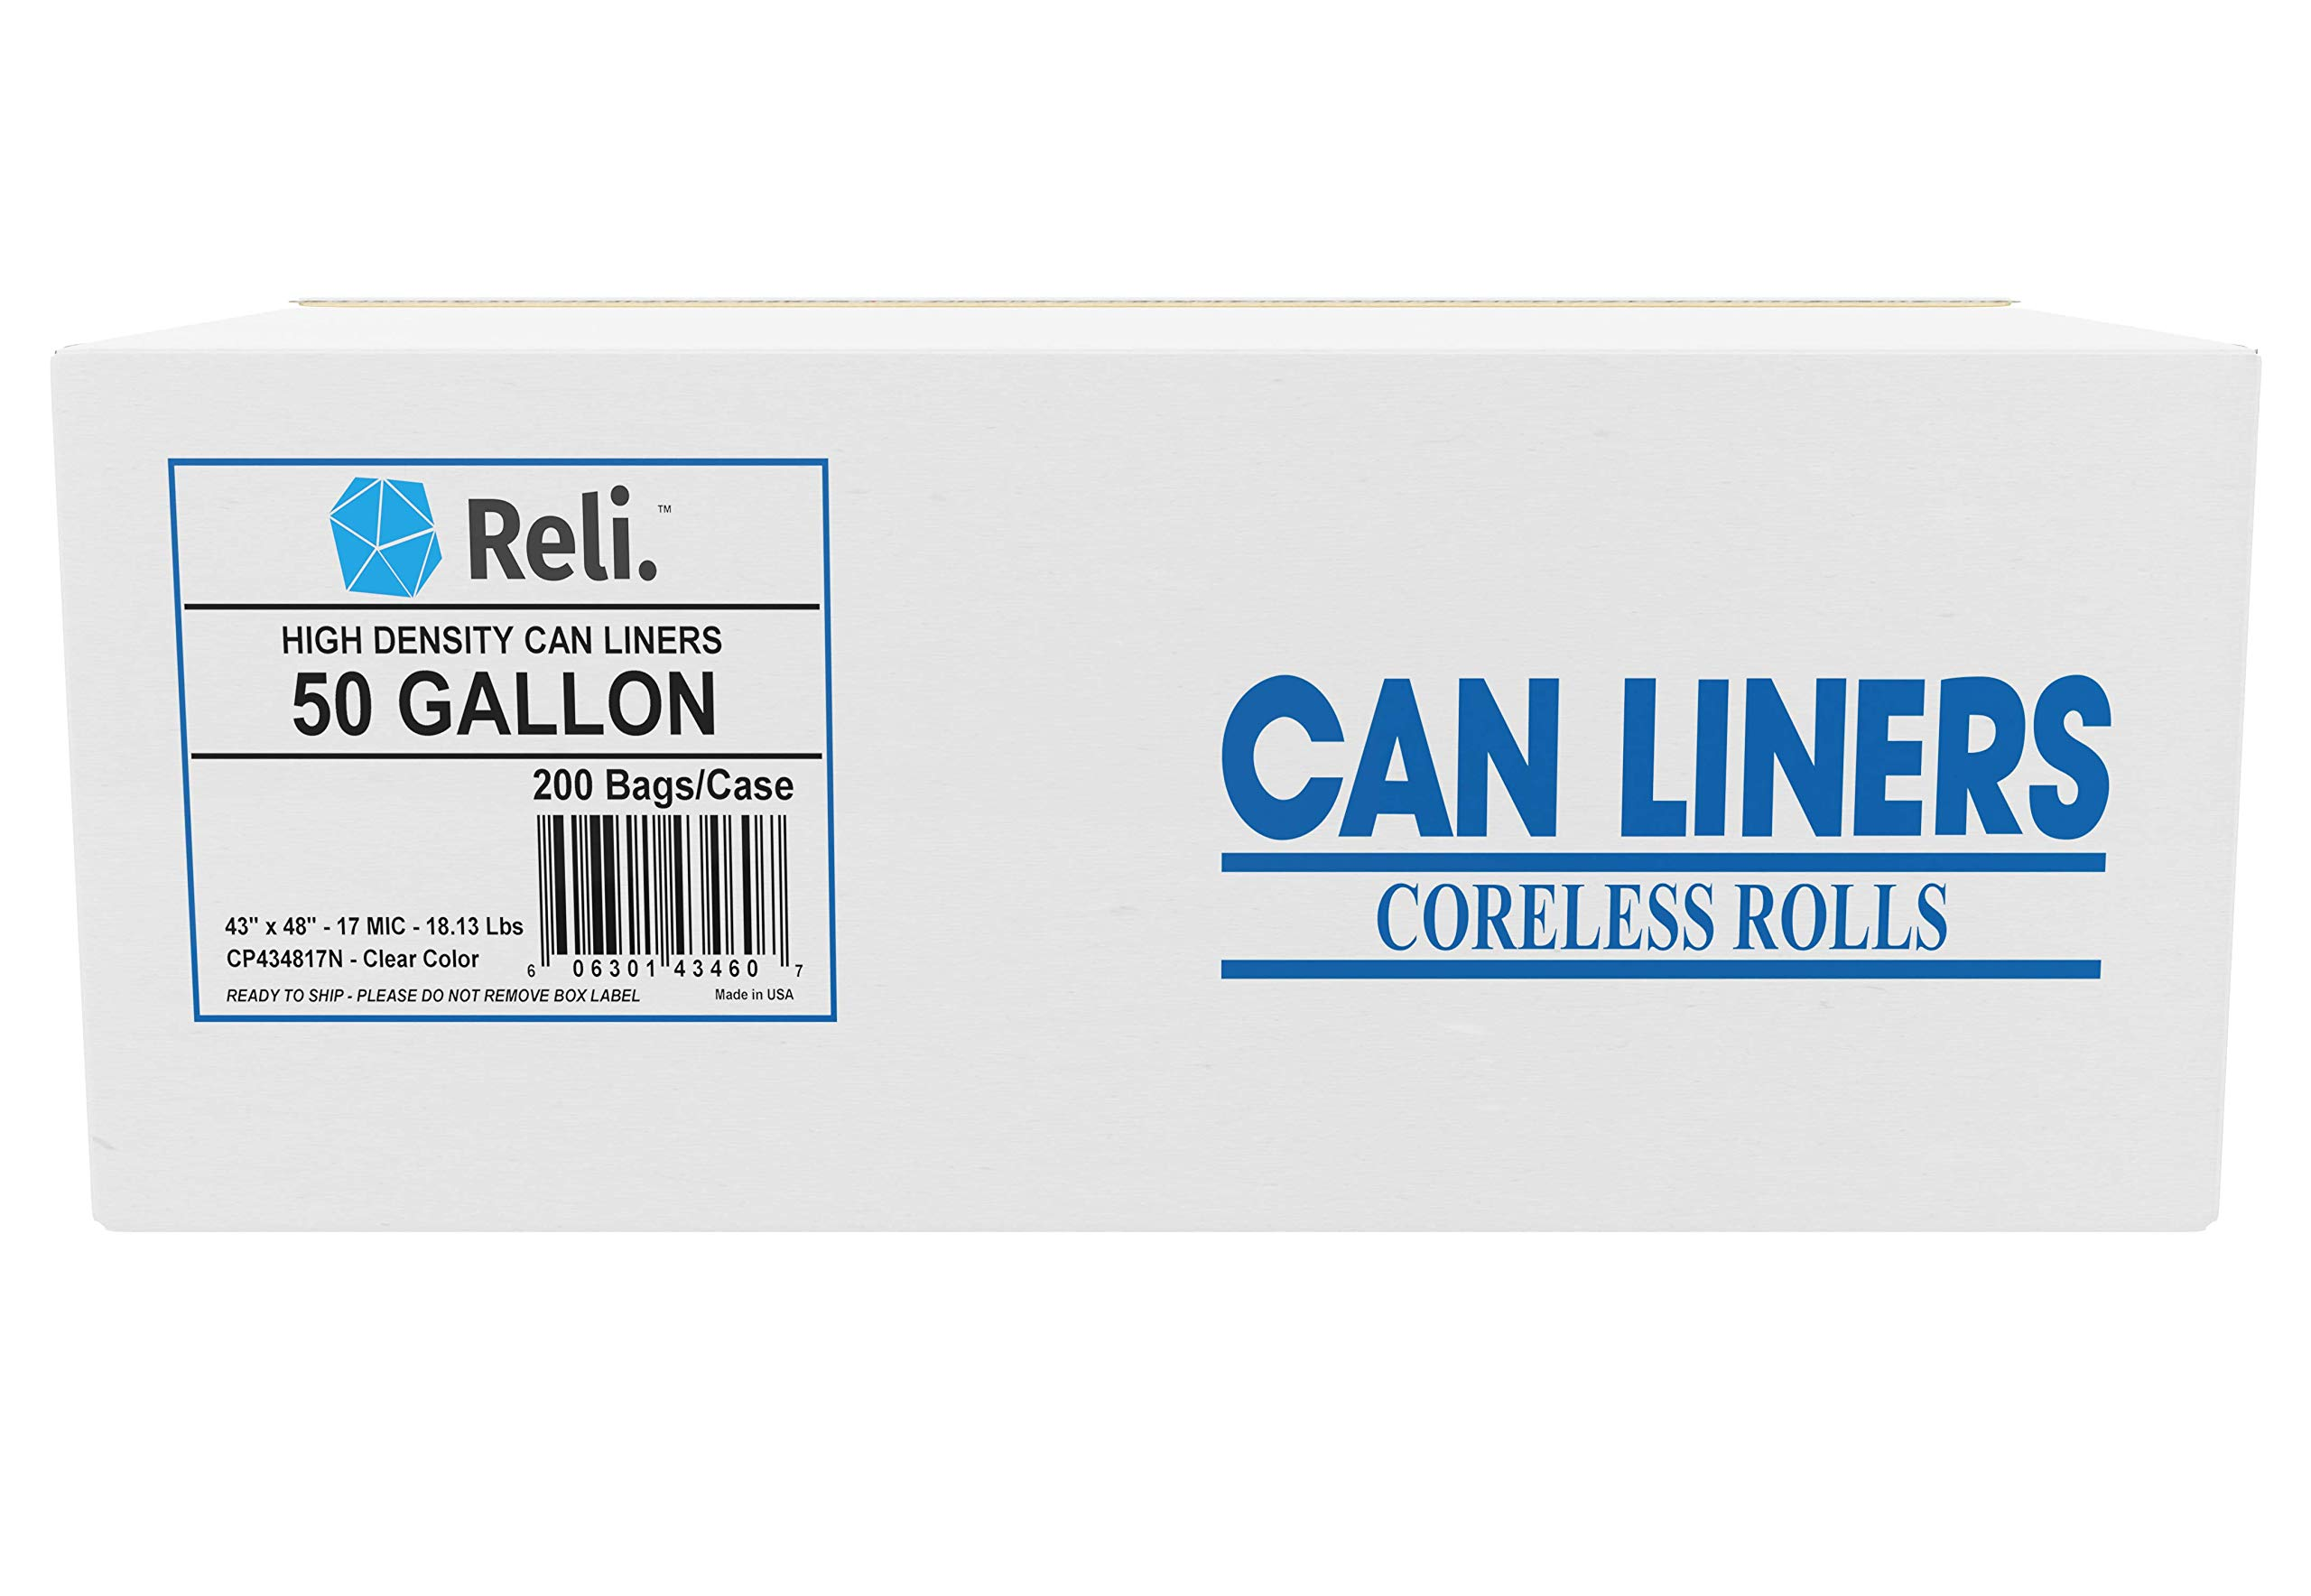 Reli. Trash Bags, 50 Gallon (200 Count) (Clear) Star Seal High Density - Easy Grab Rolls - Can Liners, Garbage Bags with 45 Gallon (45 Gal) - 50 Gallon (50 Gal) Capacity by Reli.